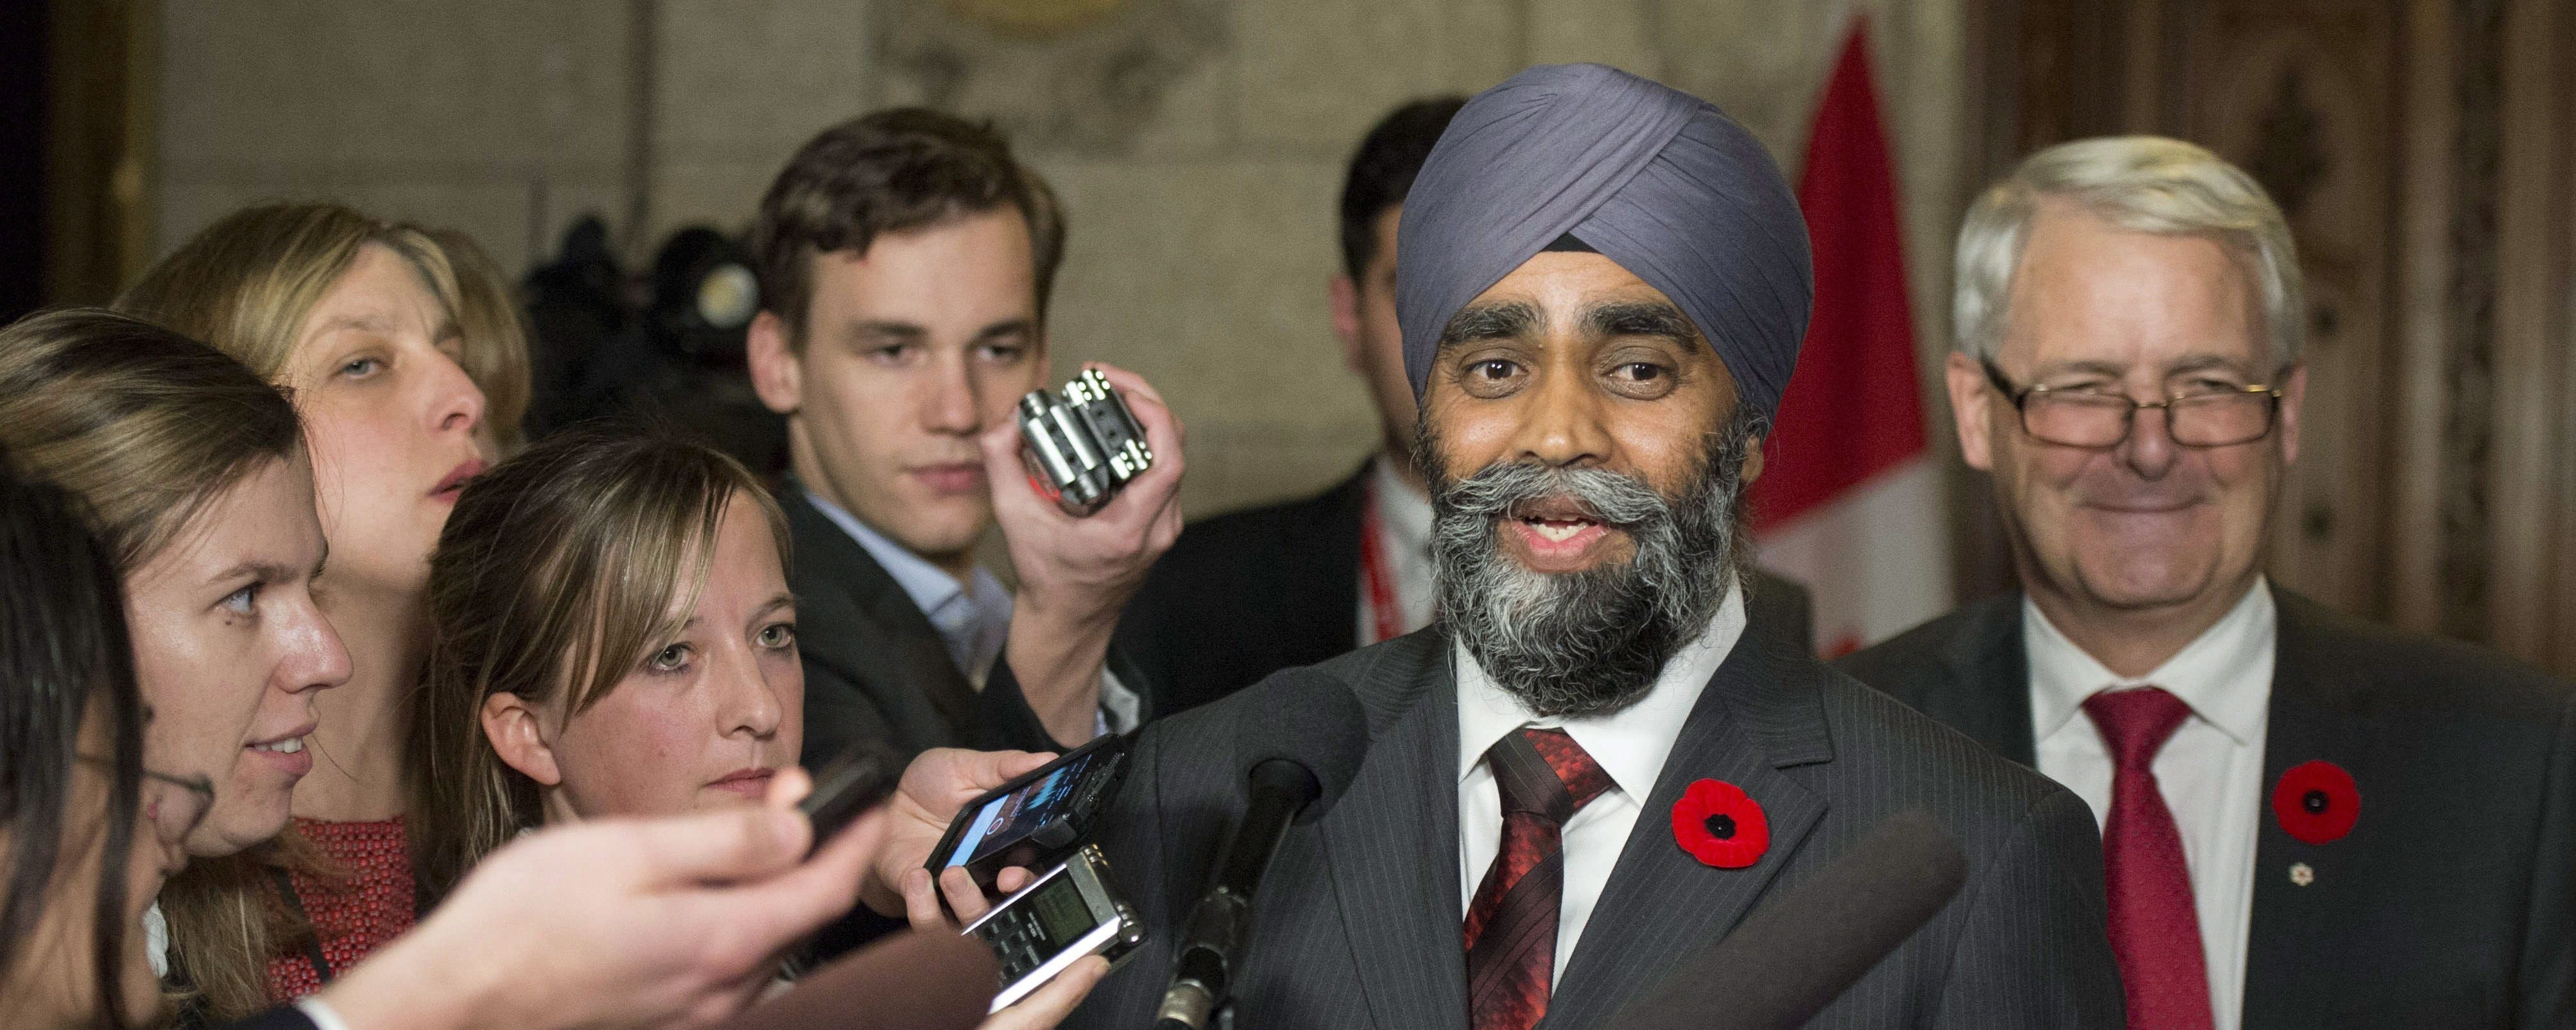 The Canadian Military Won't Stand for Any Racism Against New Defense Minister